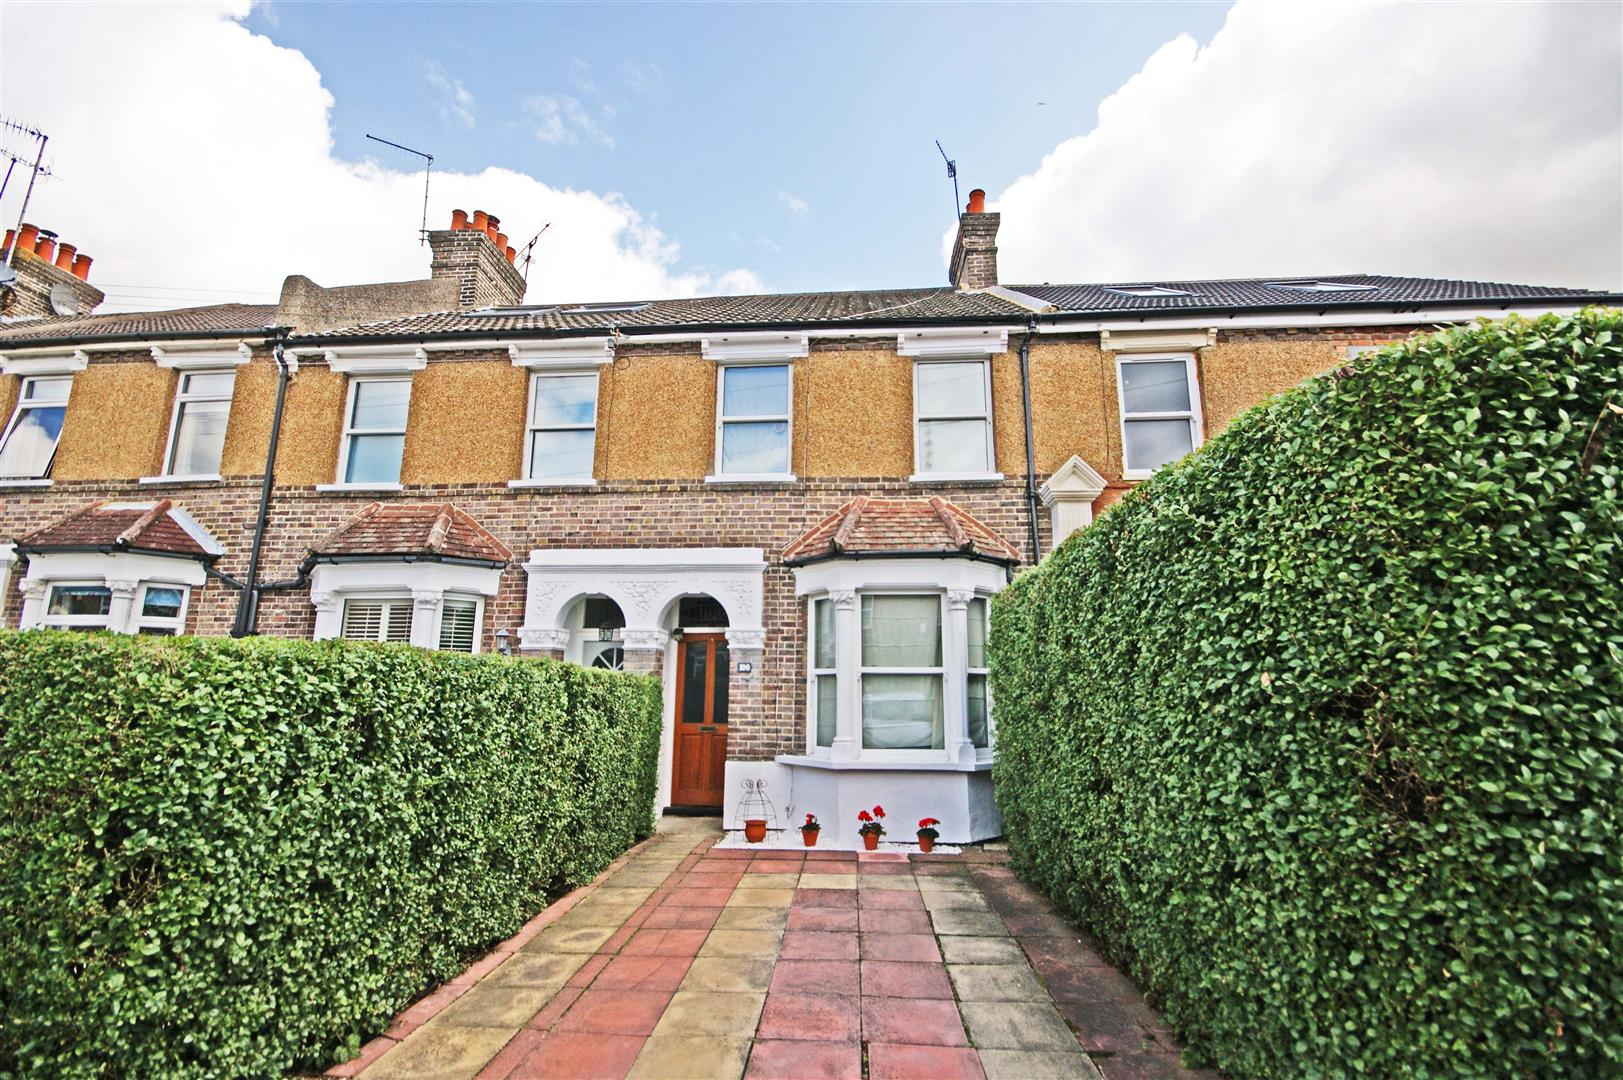 3 Bedroom Terraced House For Sale Monson Road Redhill Surrey Rh1 2ey